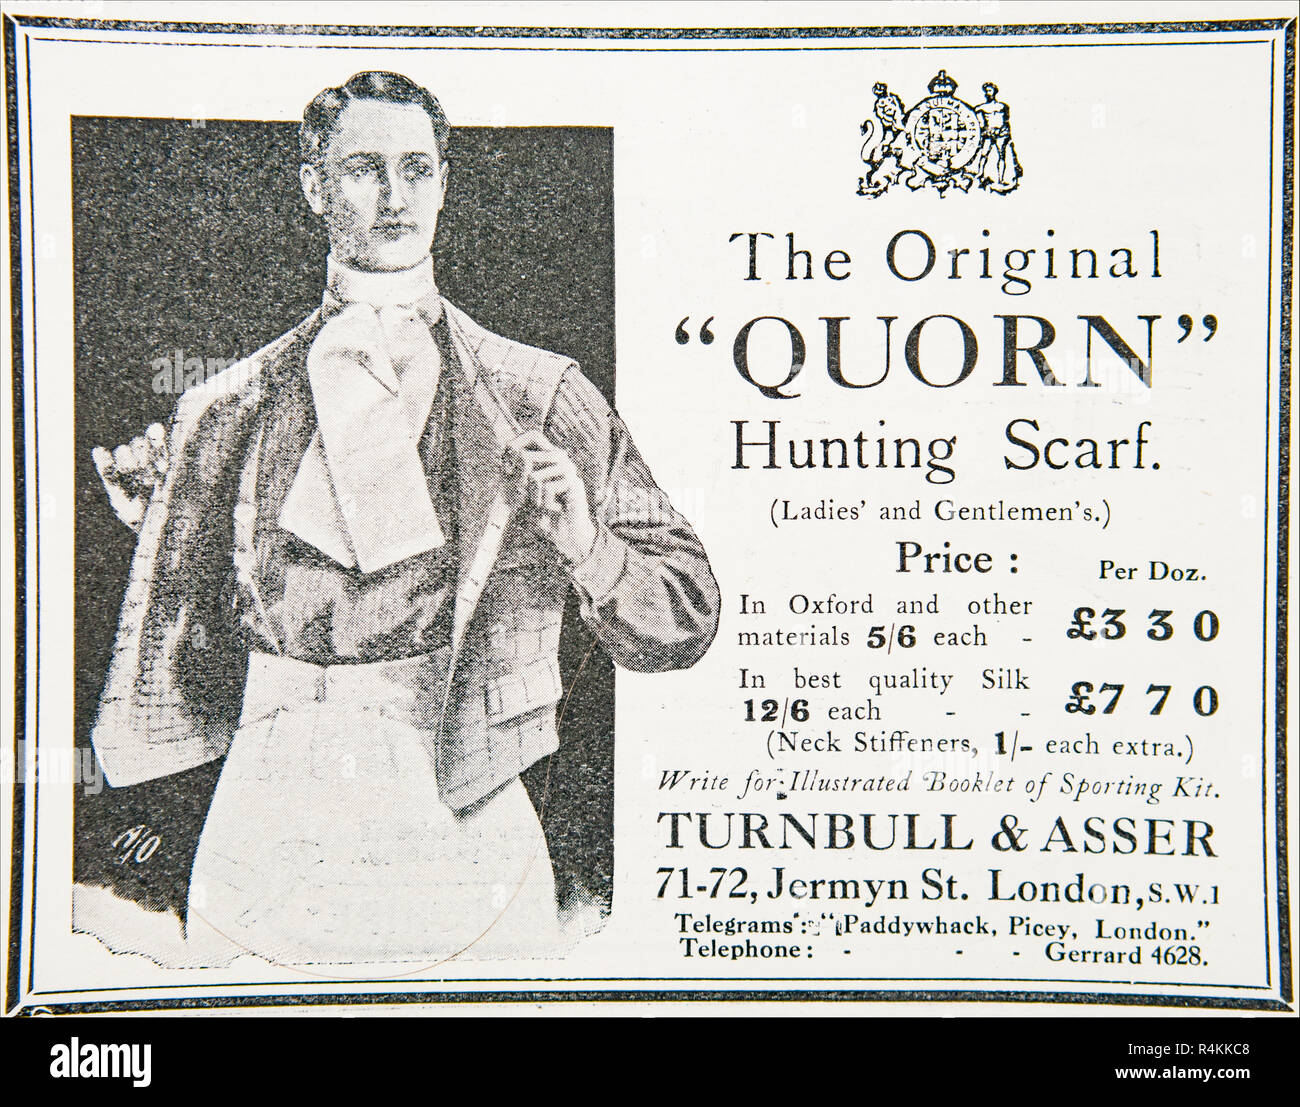 An old advert for Turnbull & Asser Quorn hunting scarf. From an old British magazine from the 1914-1919 period. - Stock Image